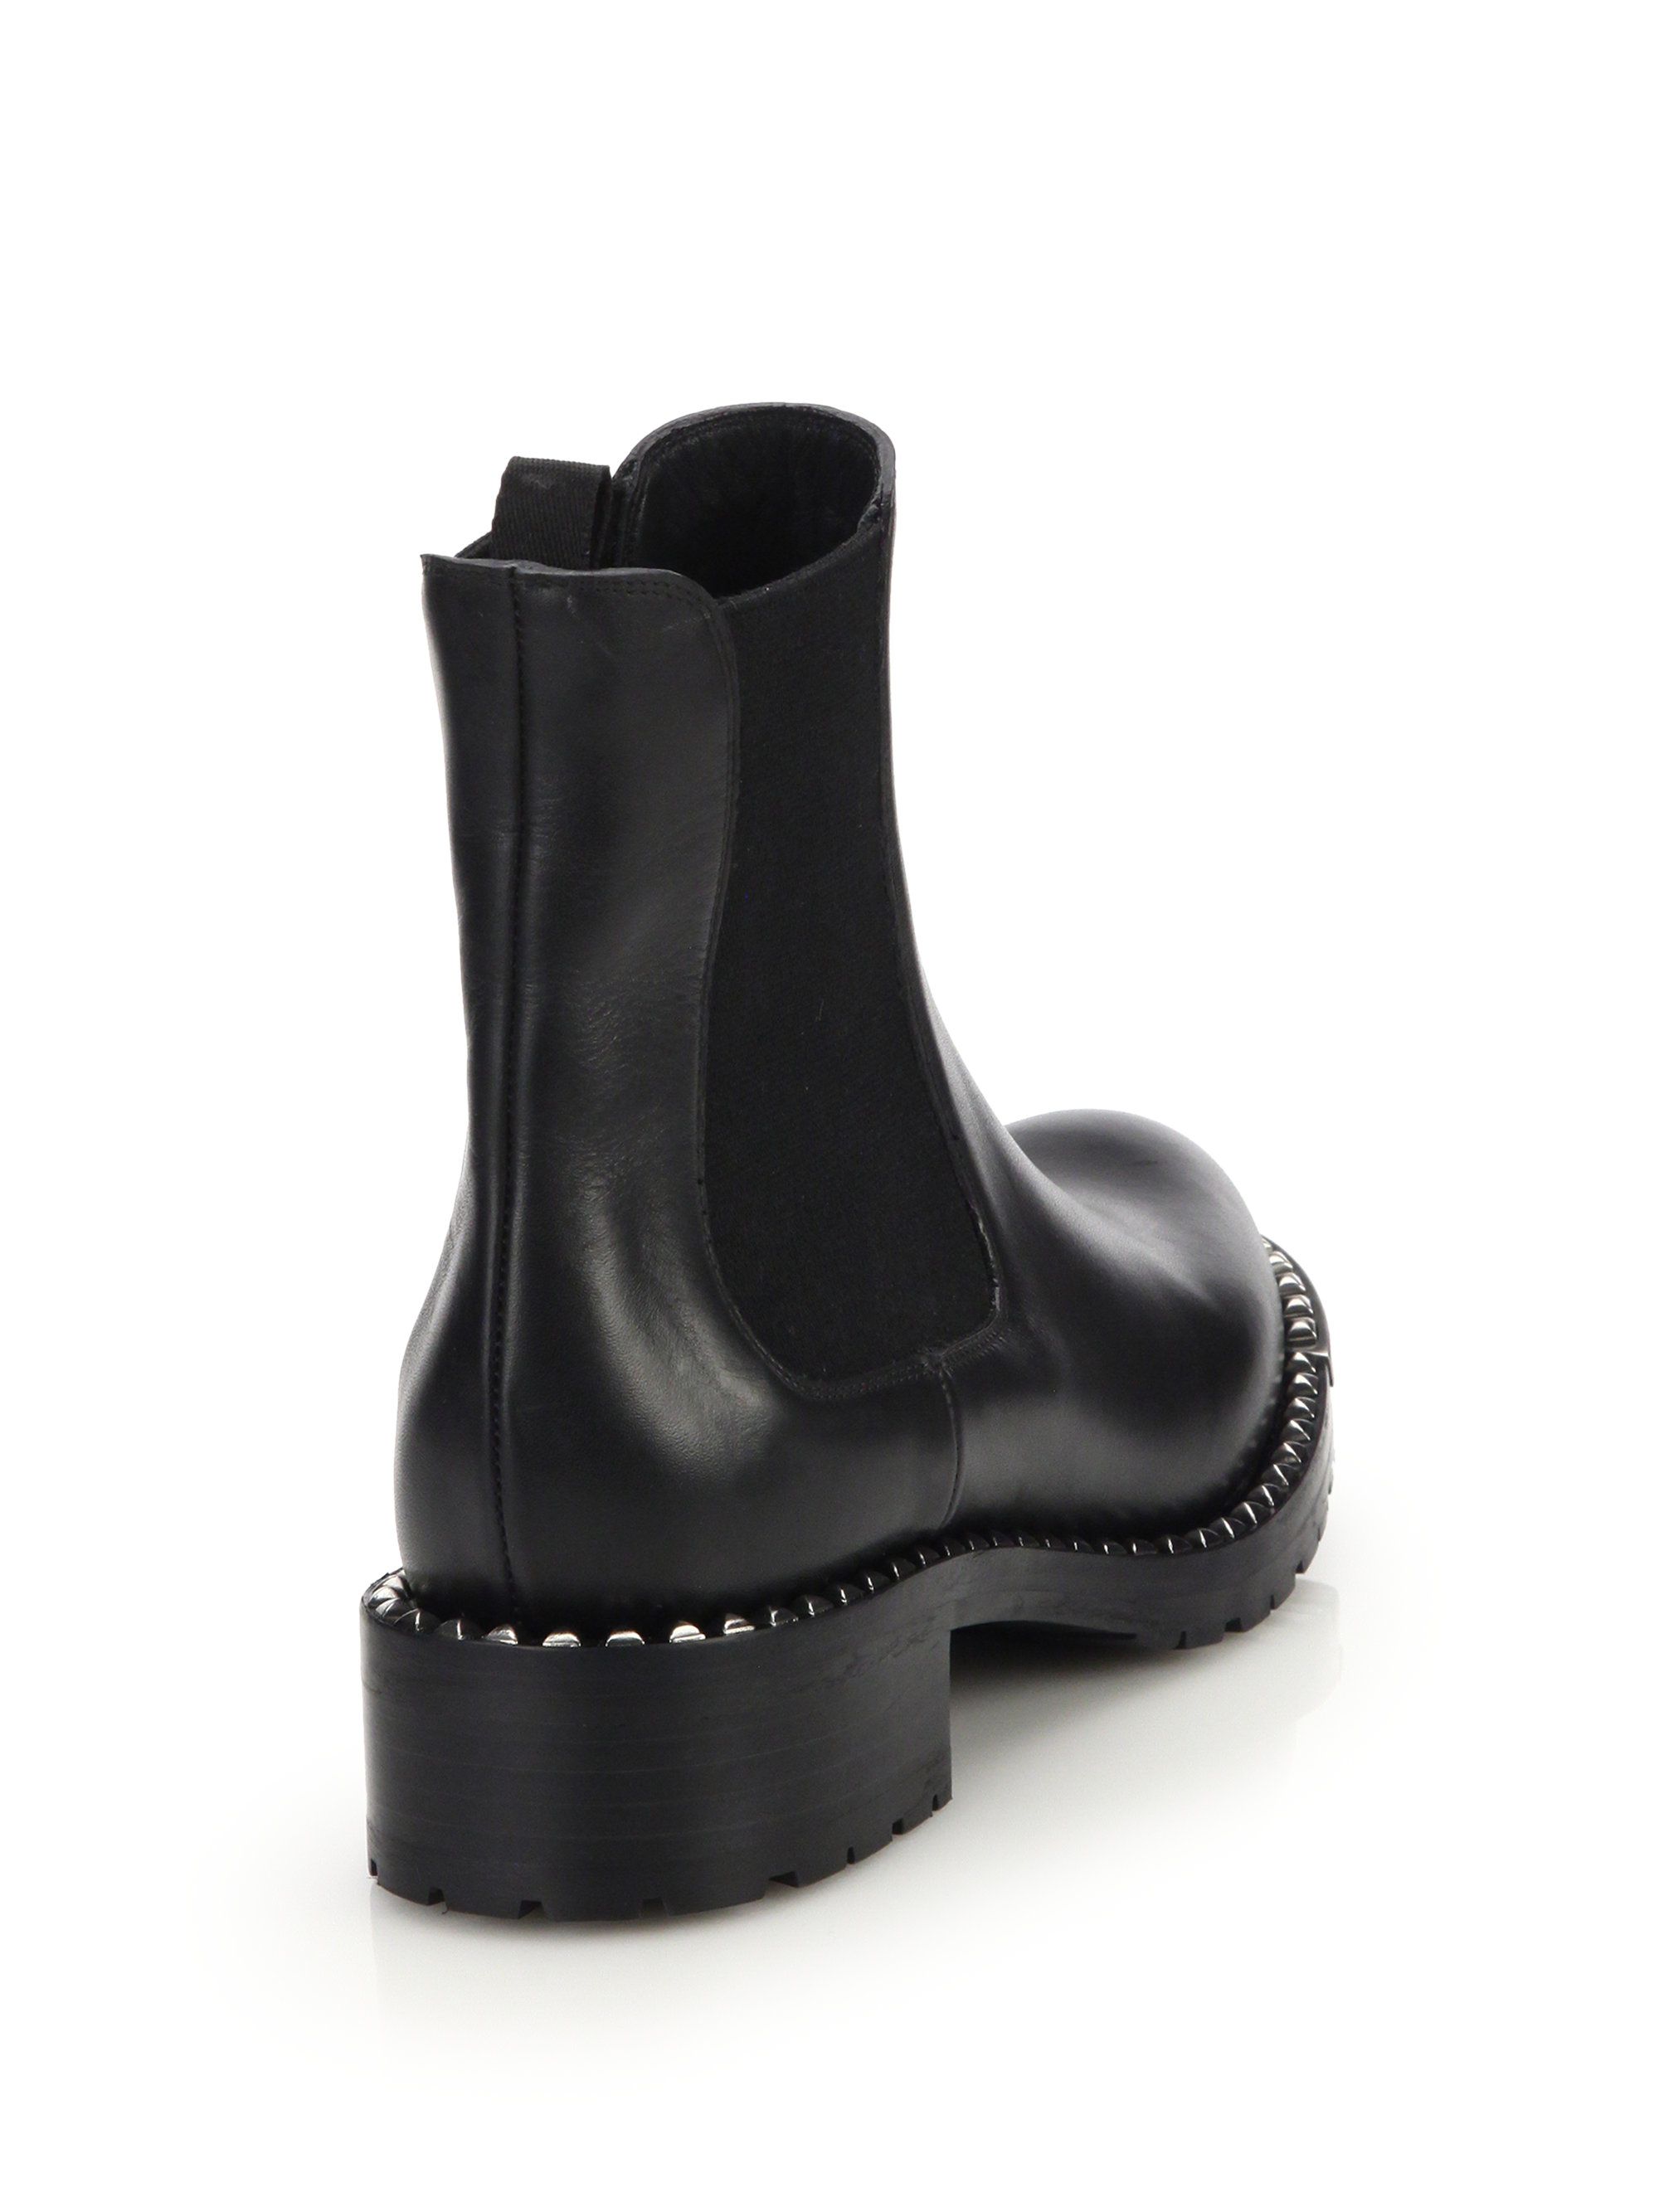 Miu Miu Leather Ankle Boots Discount Looking For pmVgdce